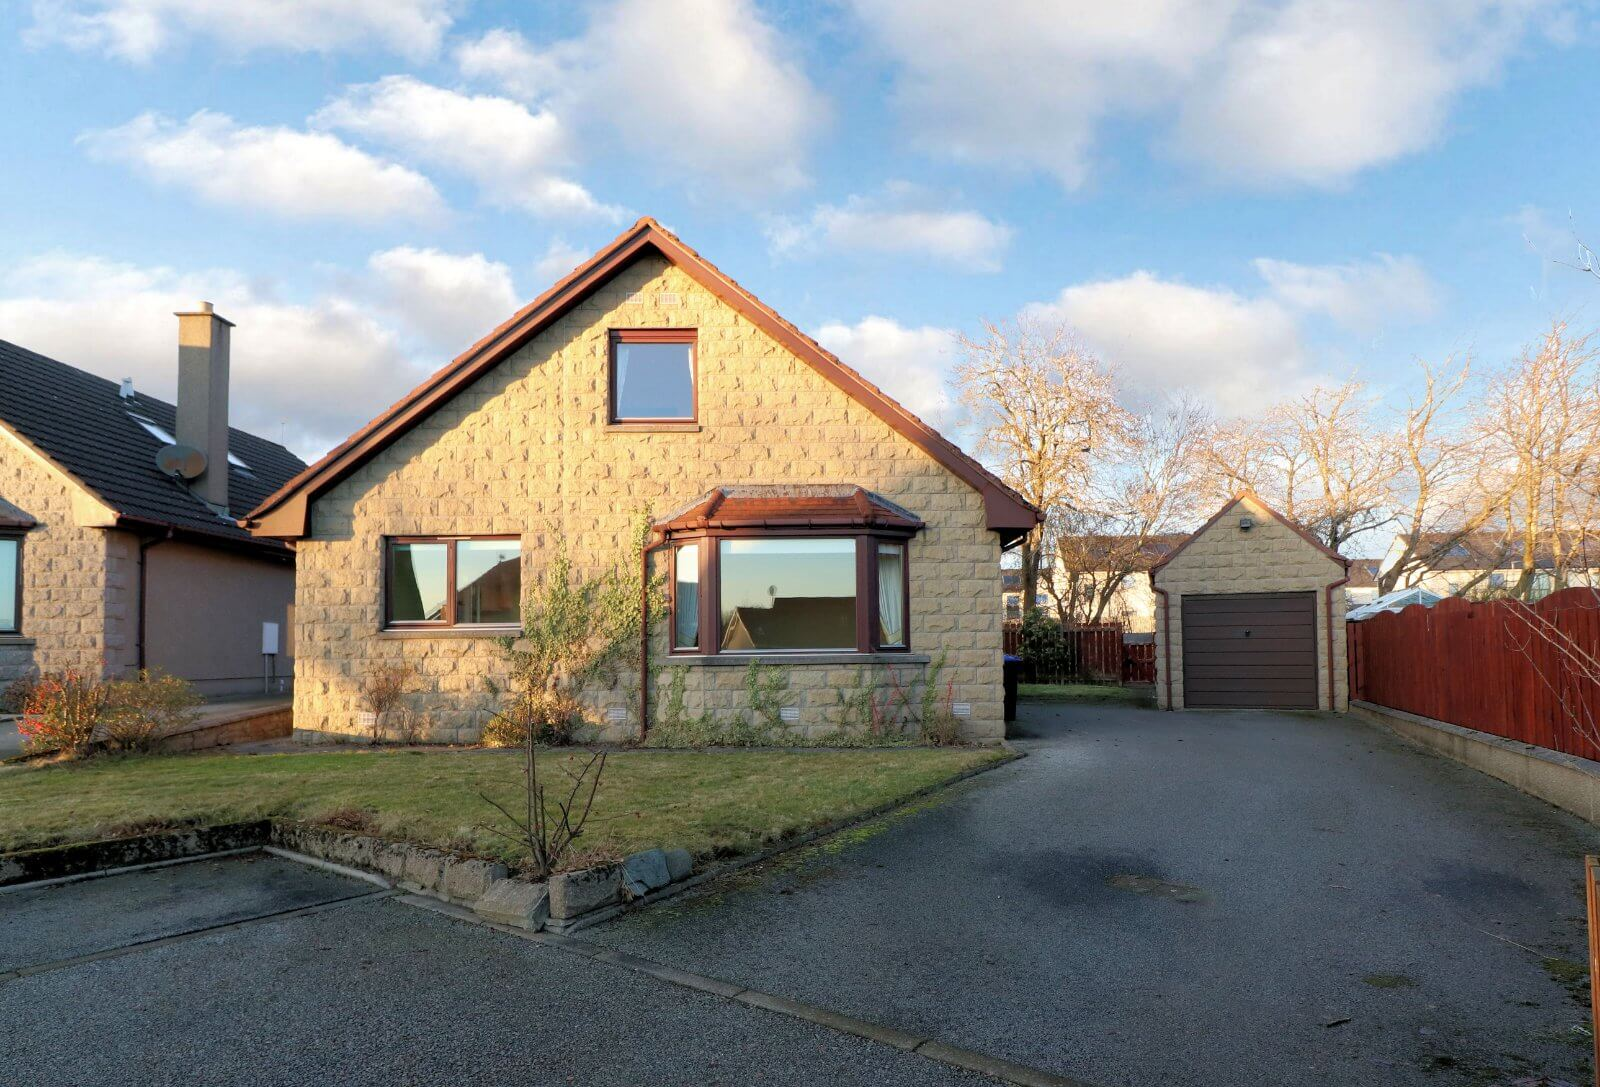 Our latest properties for sale and to let (10th February 2020)